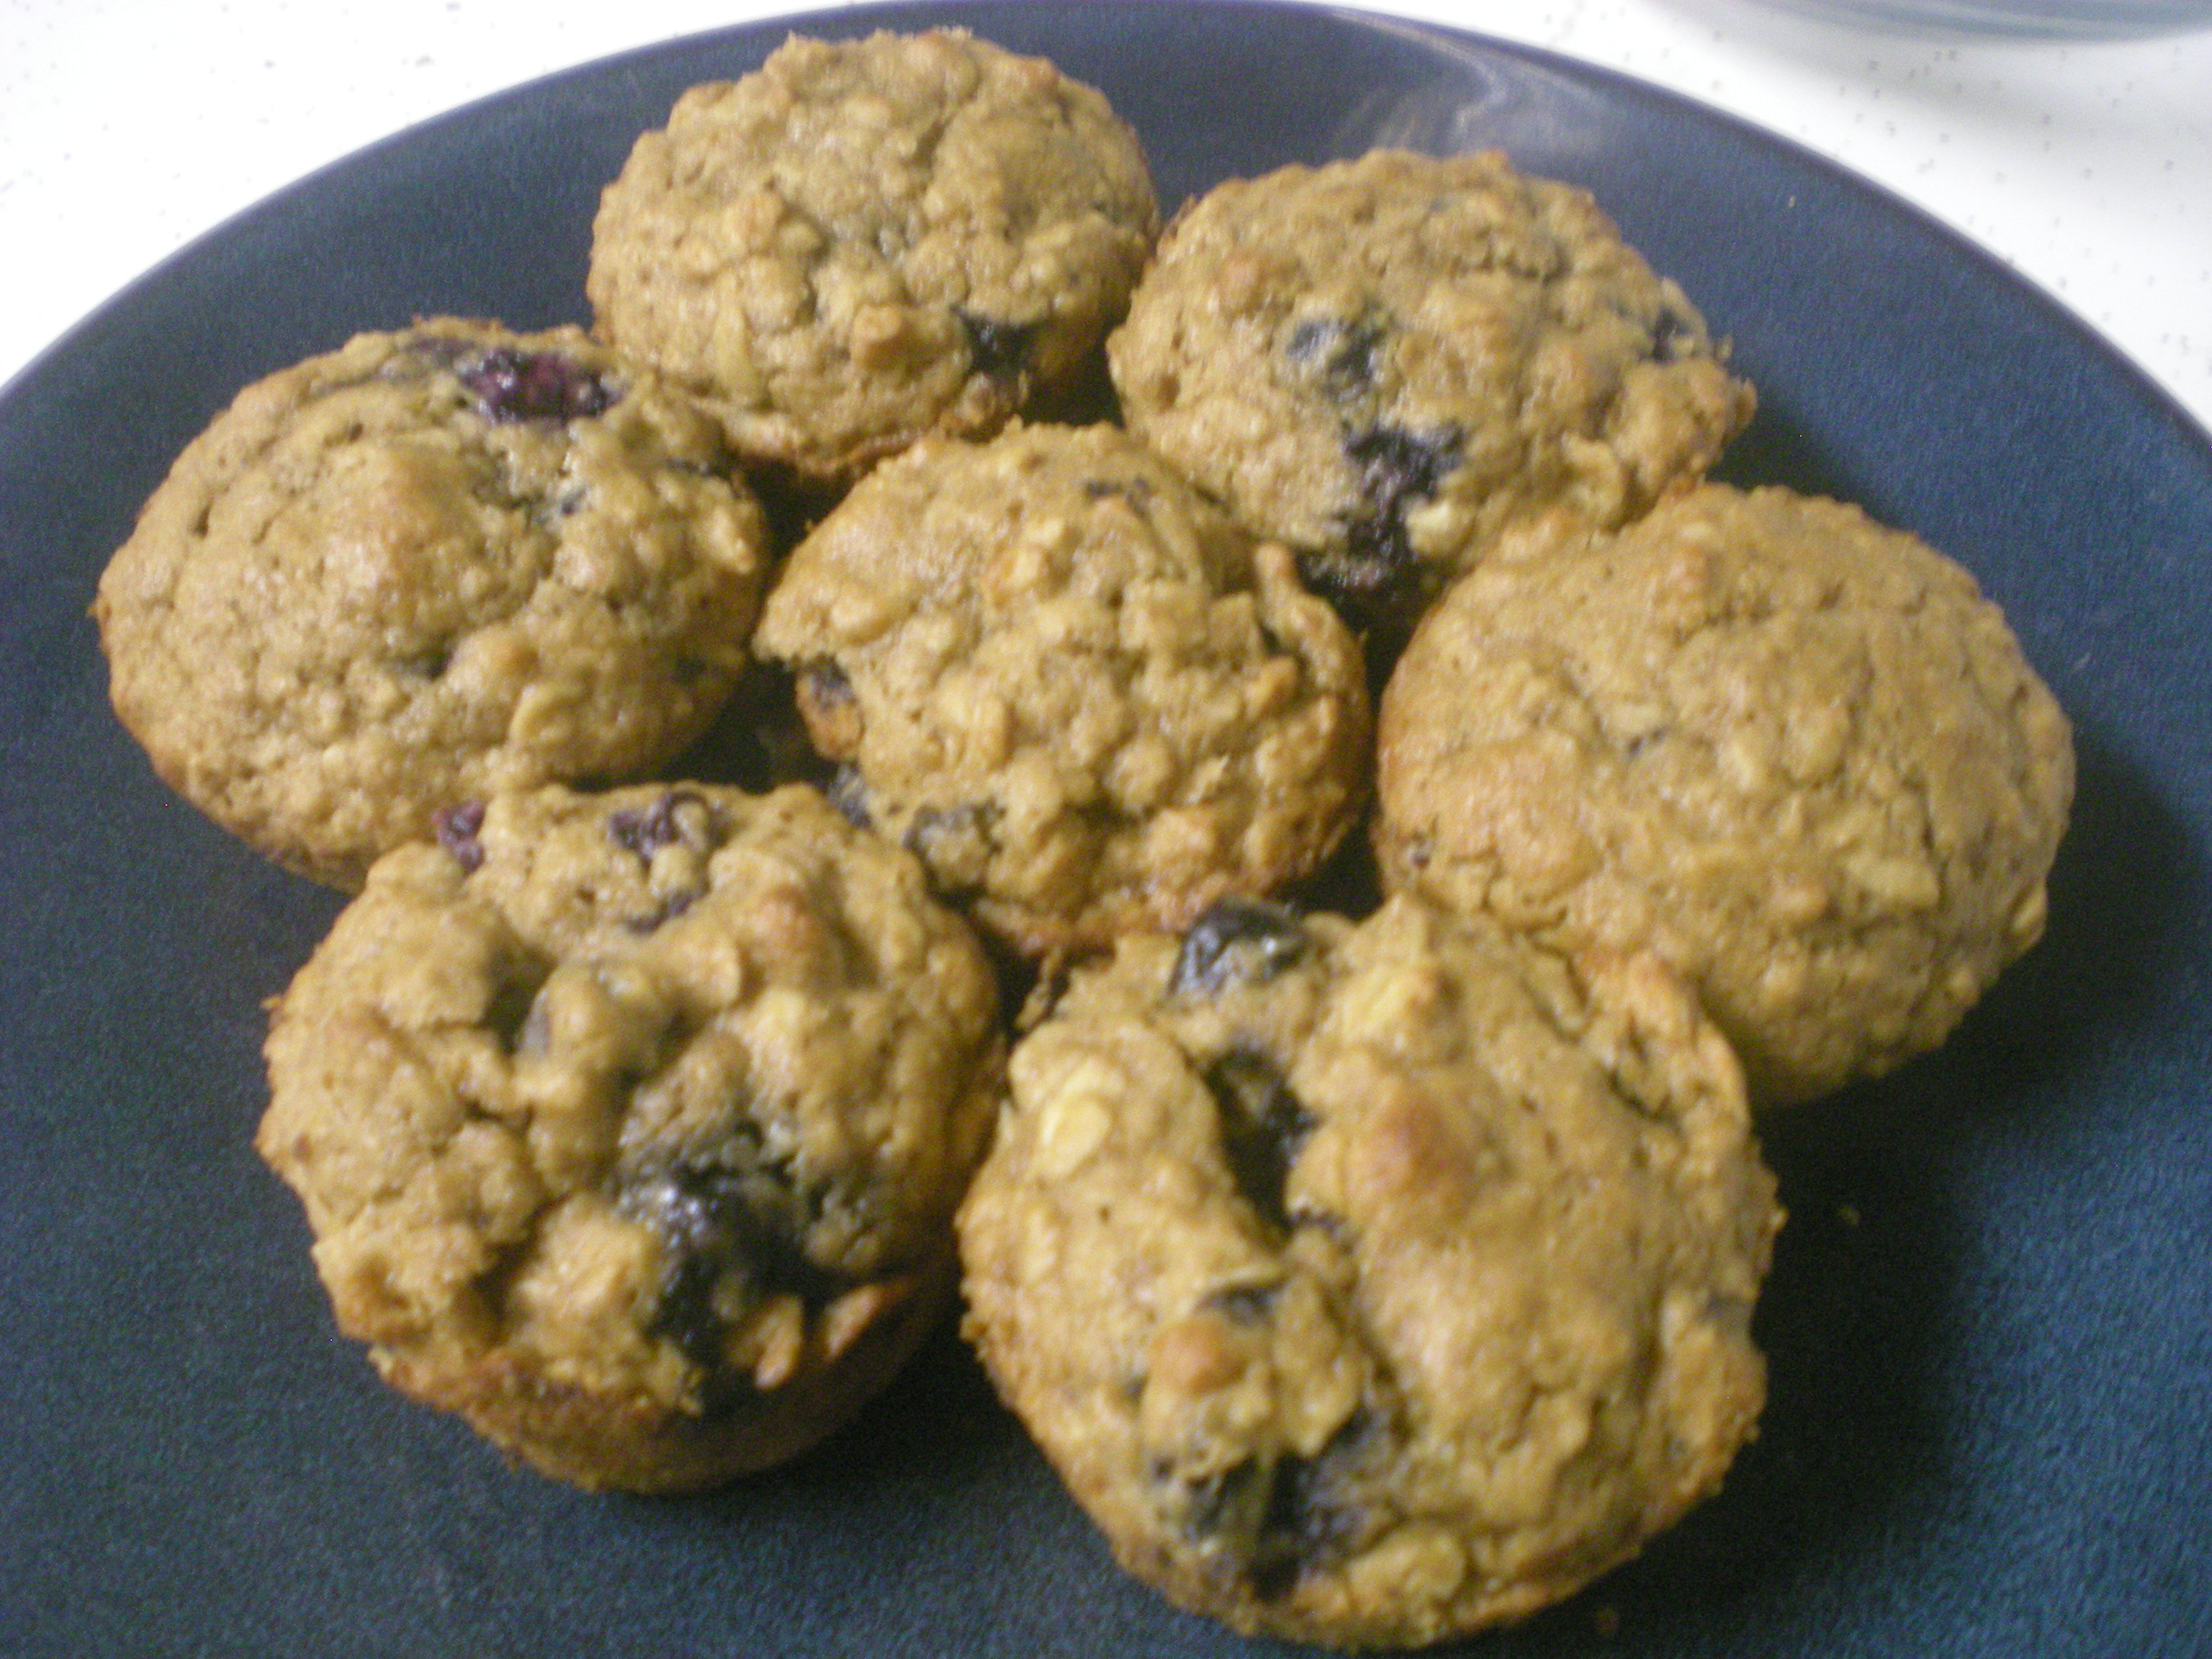 Oat and Blueberry Muffins